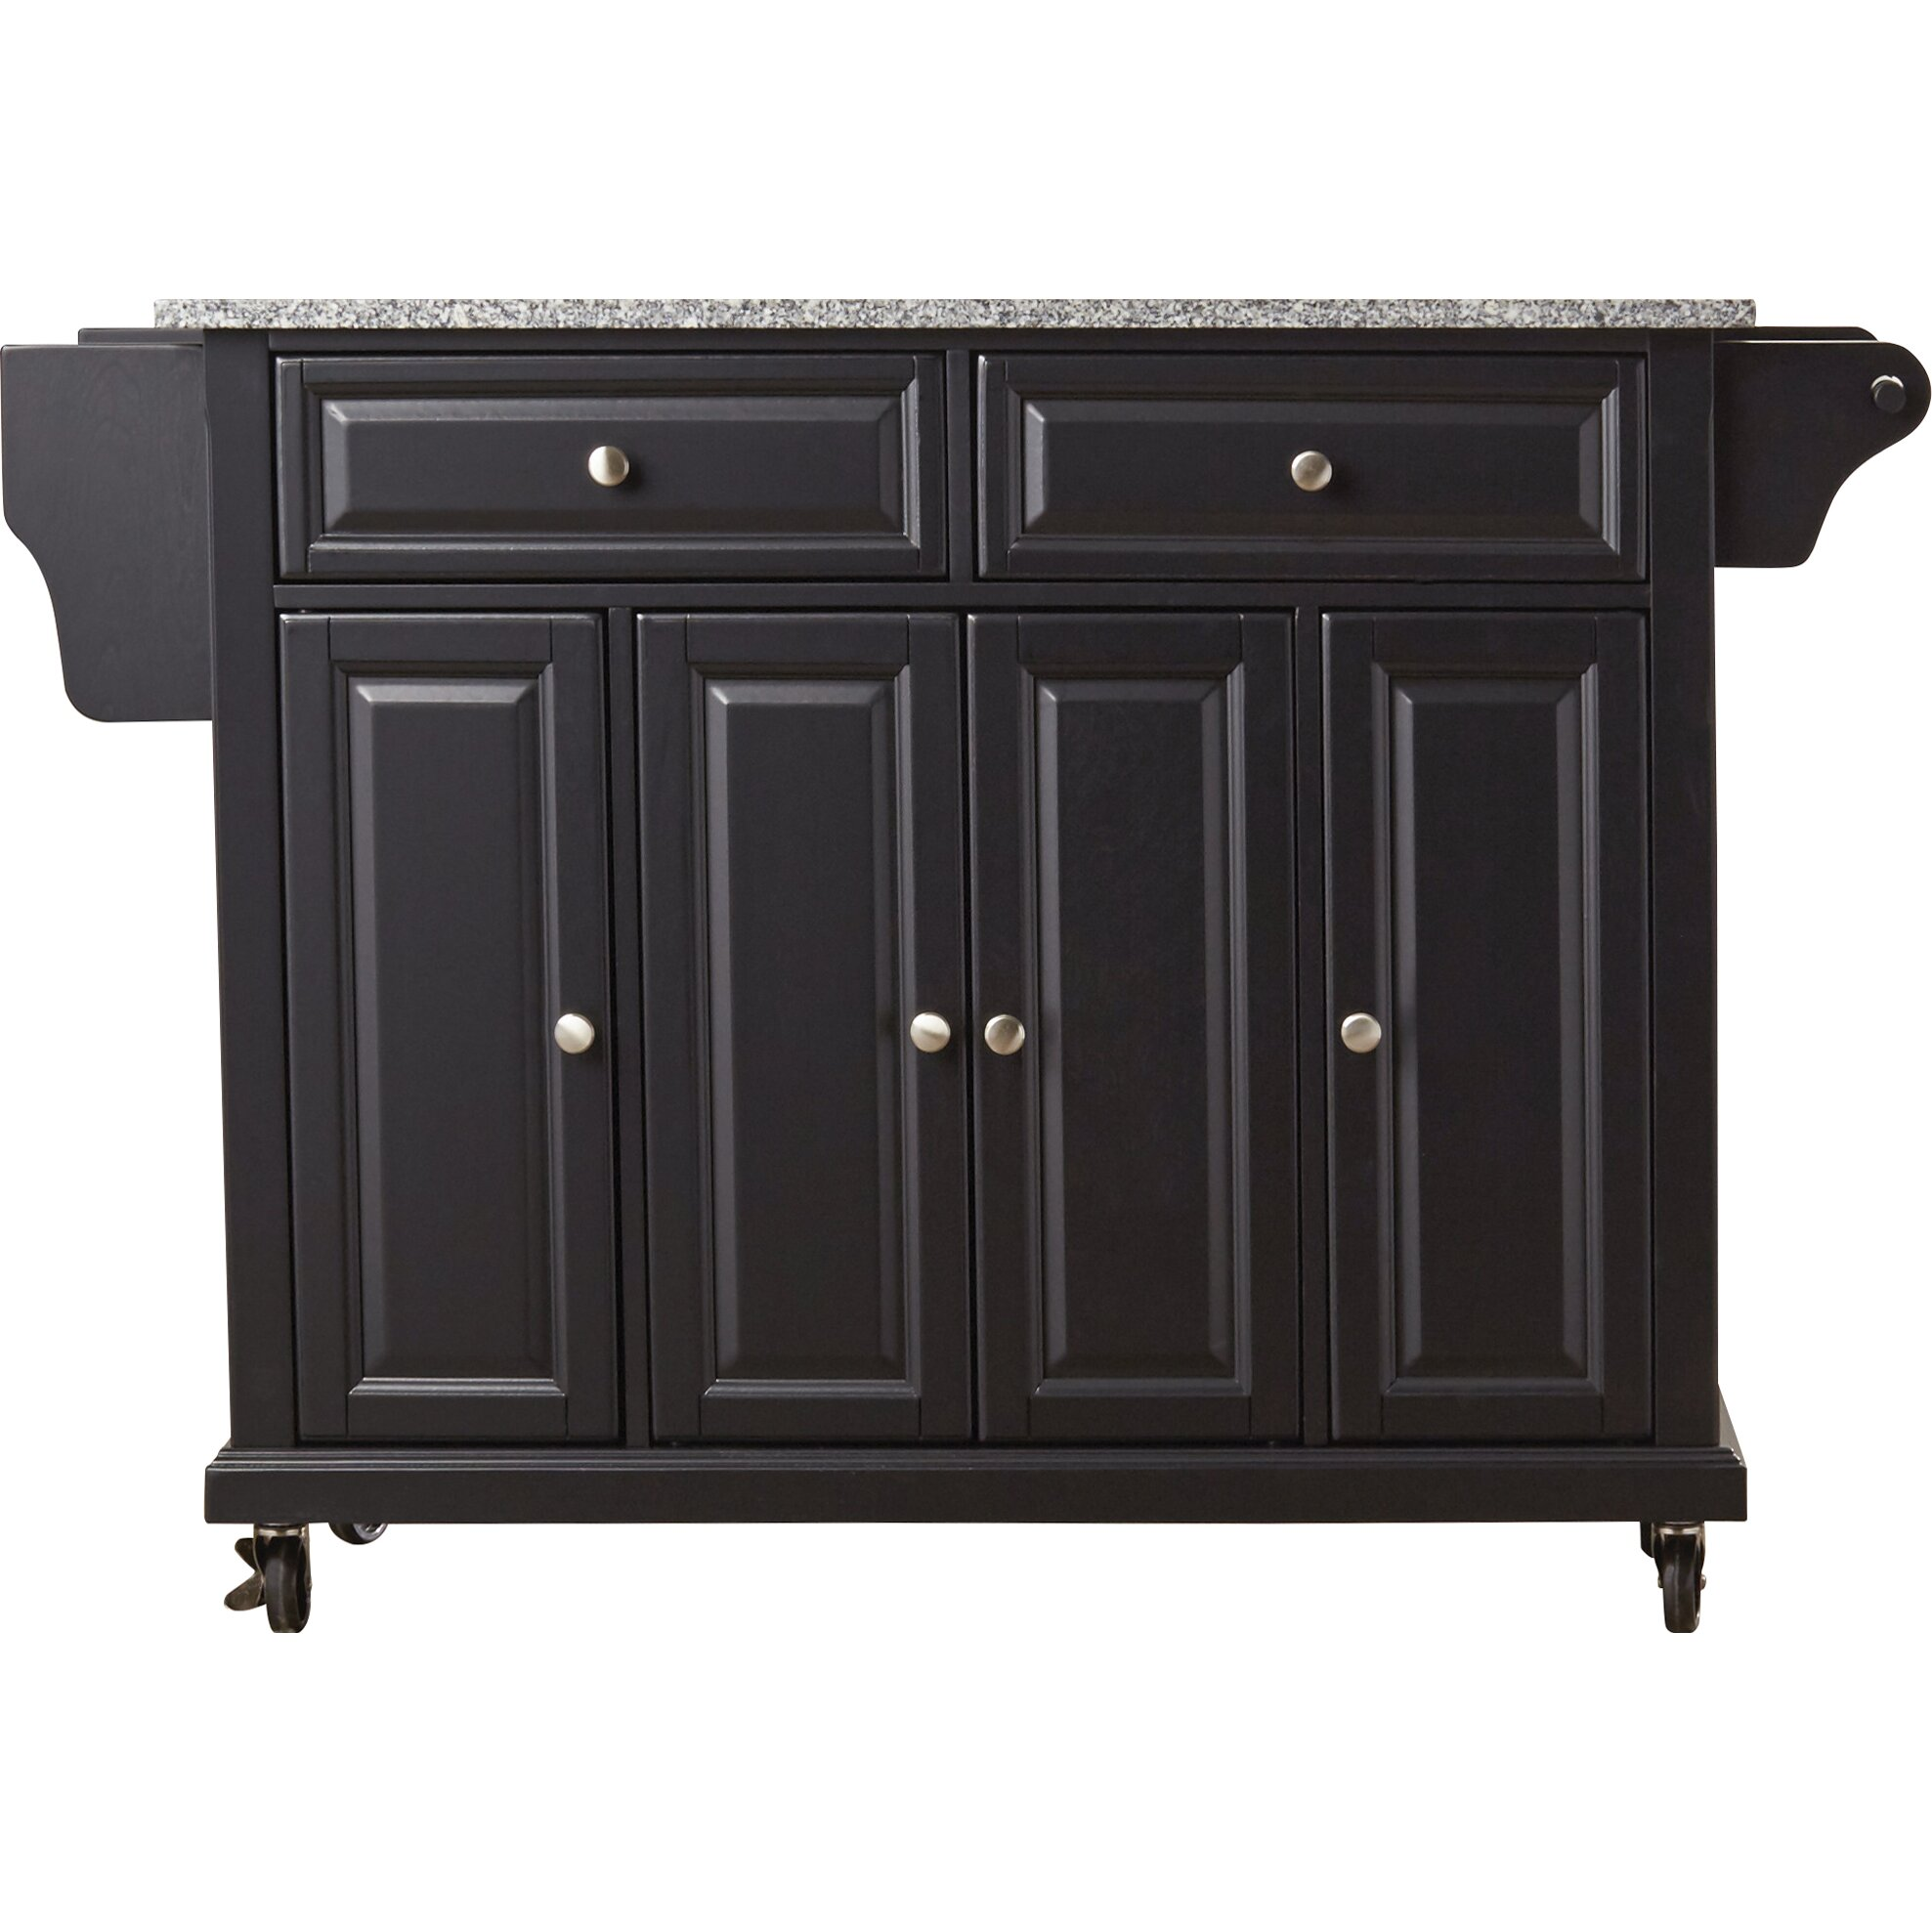 Darby Home Co Pottstown Kitchen Cart Island With Granite Top Reviews Wayfair